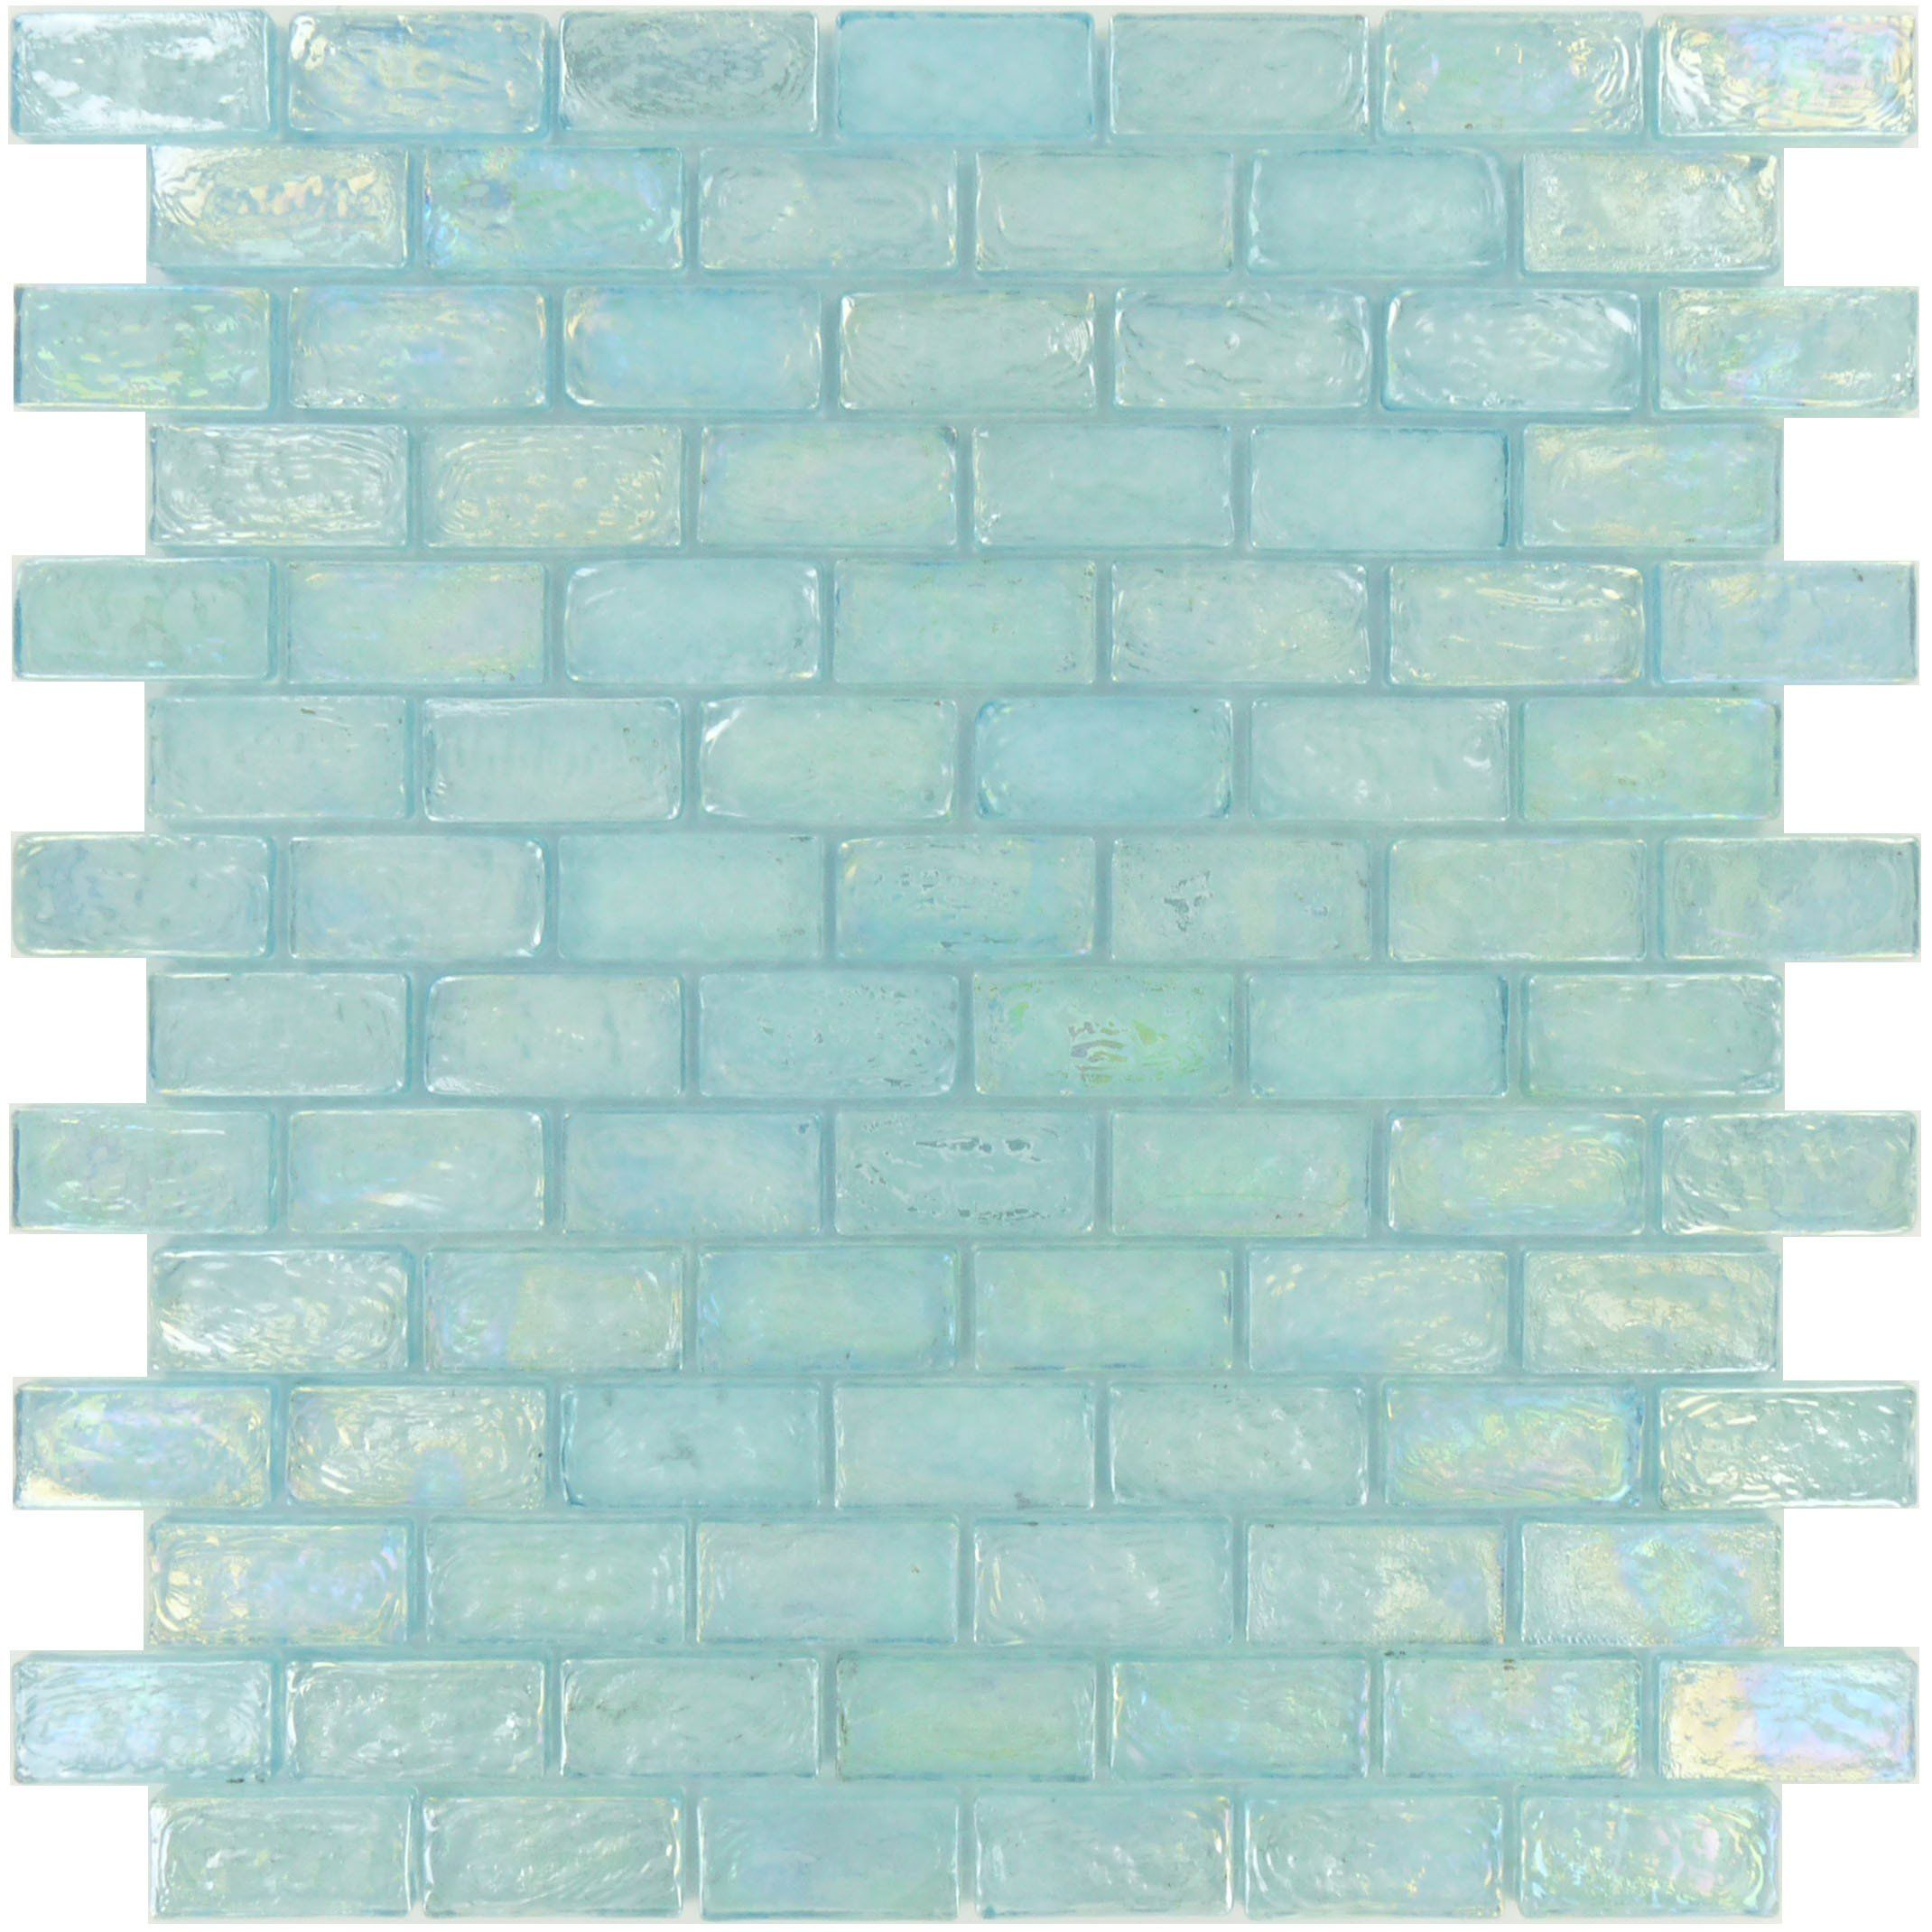 Uniform Brick Aqua Glass Uniform Brick Tile Glossy Iridescent Ibr21 Aqua Tiles Sea Glass Tile Iridescent Glass Tiles